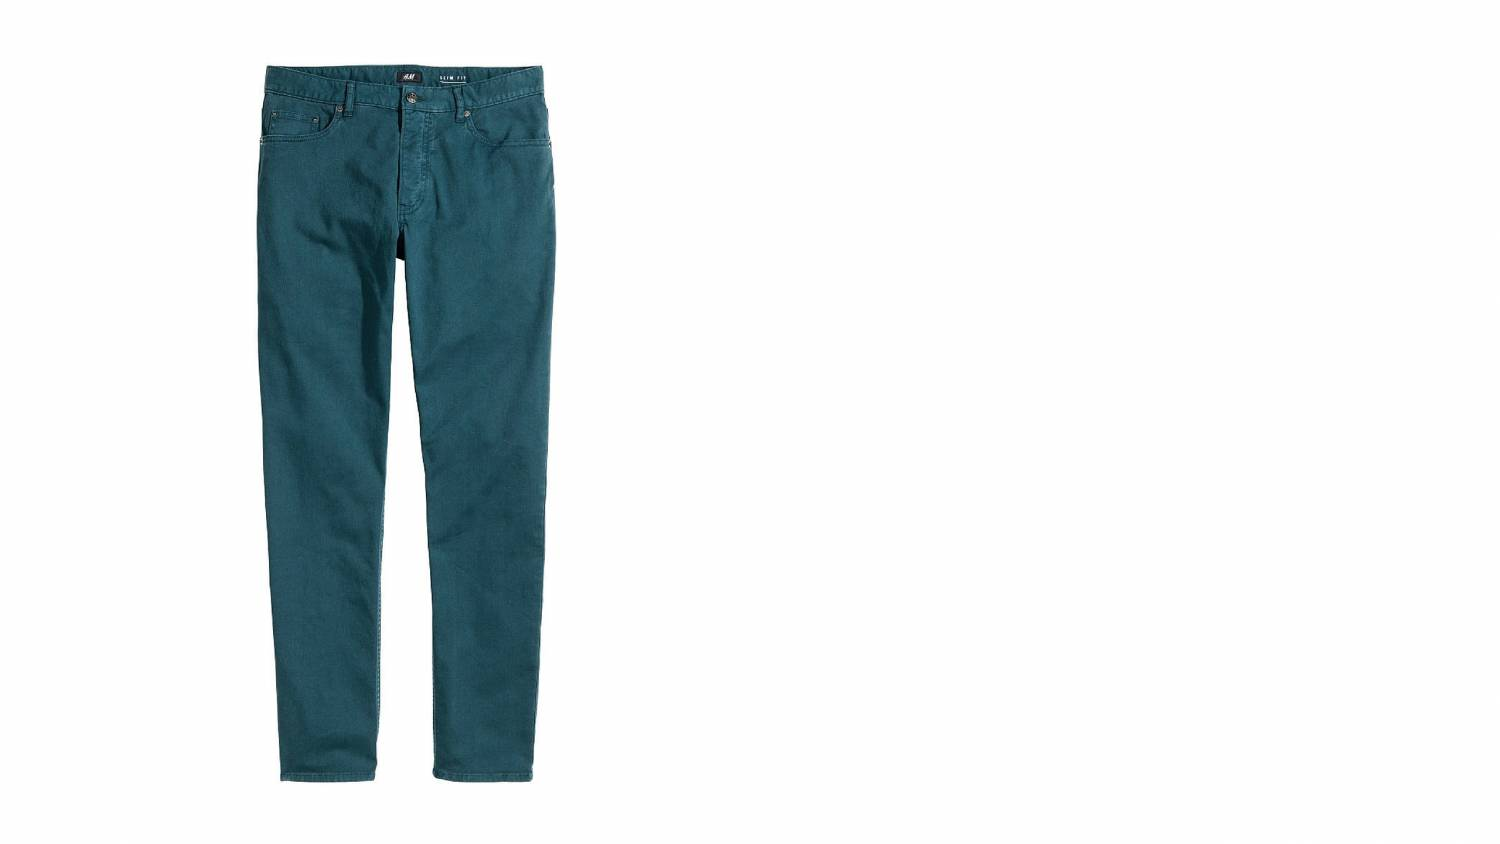 turquoise, hm, flat style, jeans, color